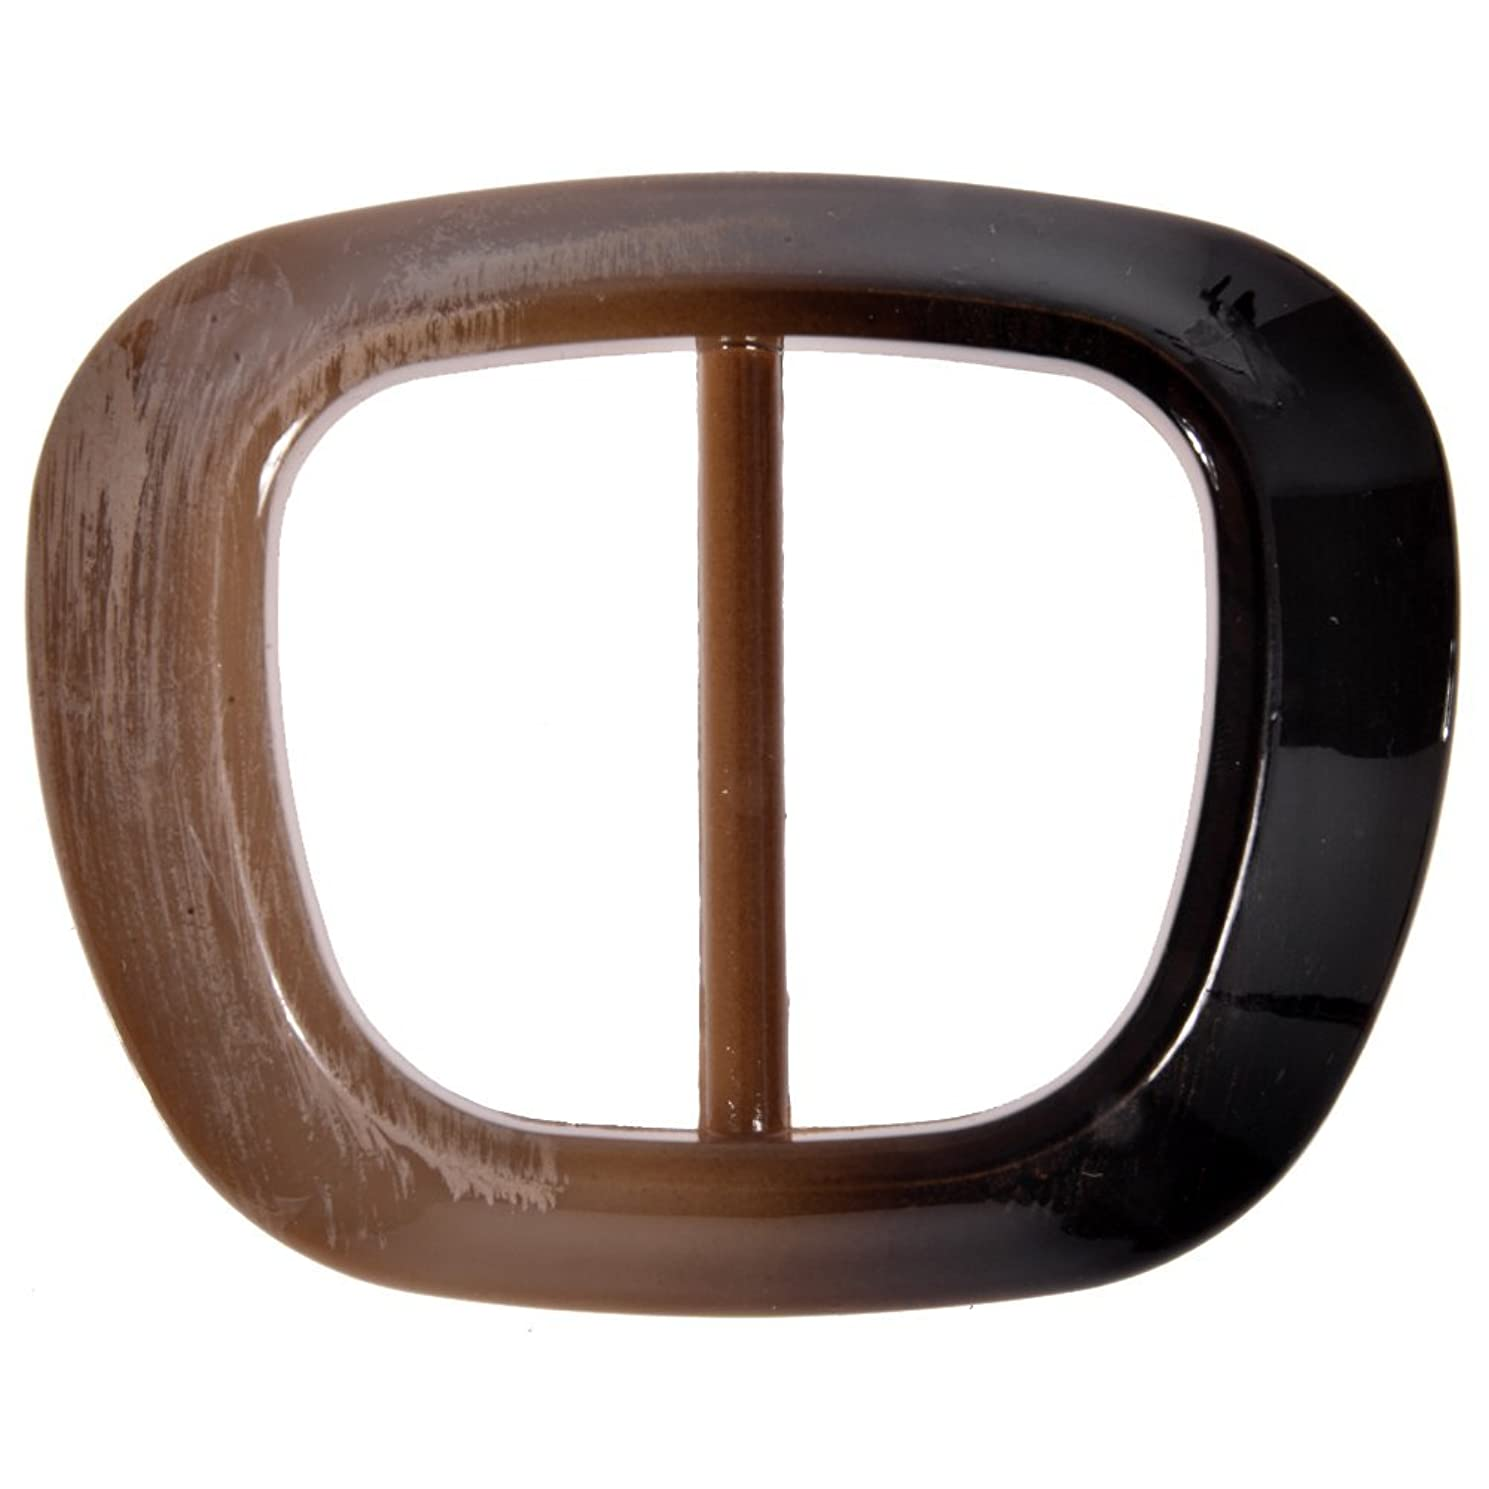 Mibo Special FinishSprayed Mibo Imitation Horn Buckle Raised Square Oval Shape 40mm Inside Bar Brown